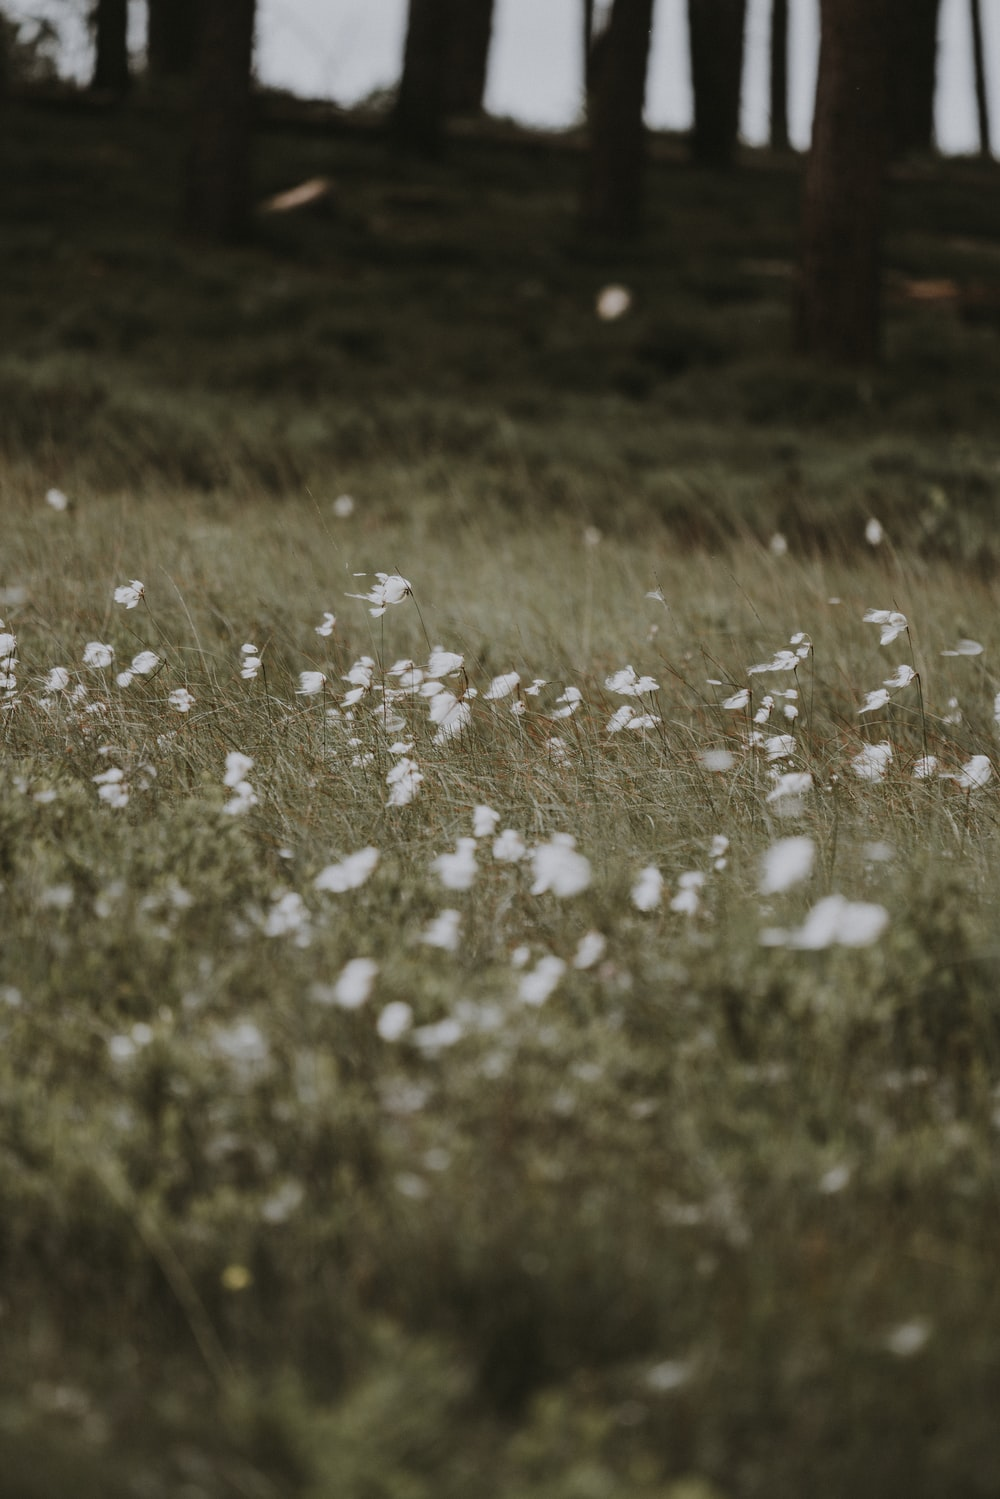 Blowing grass pictures download free images on unsplash white flowers and green grass mightylinksfo